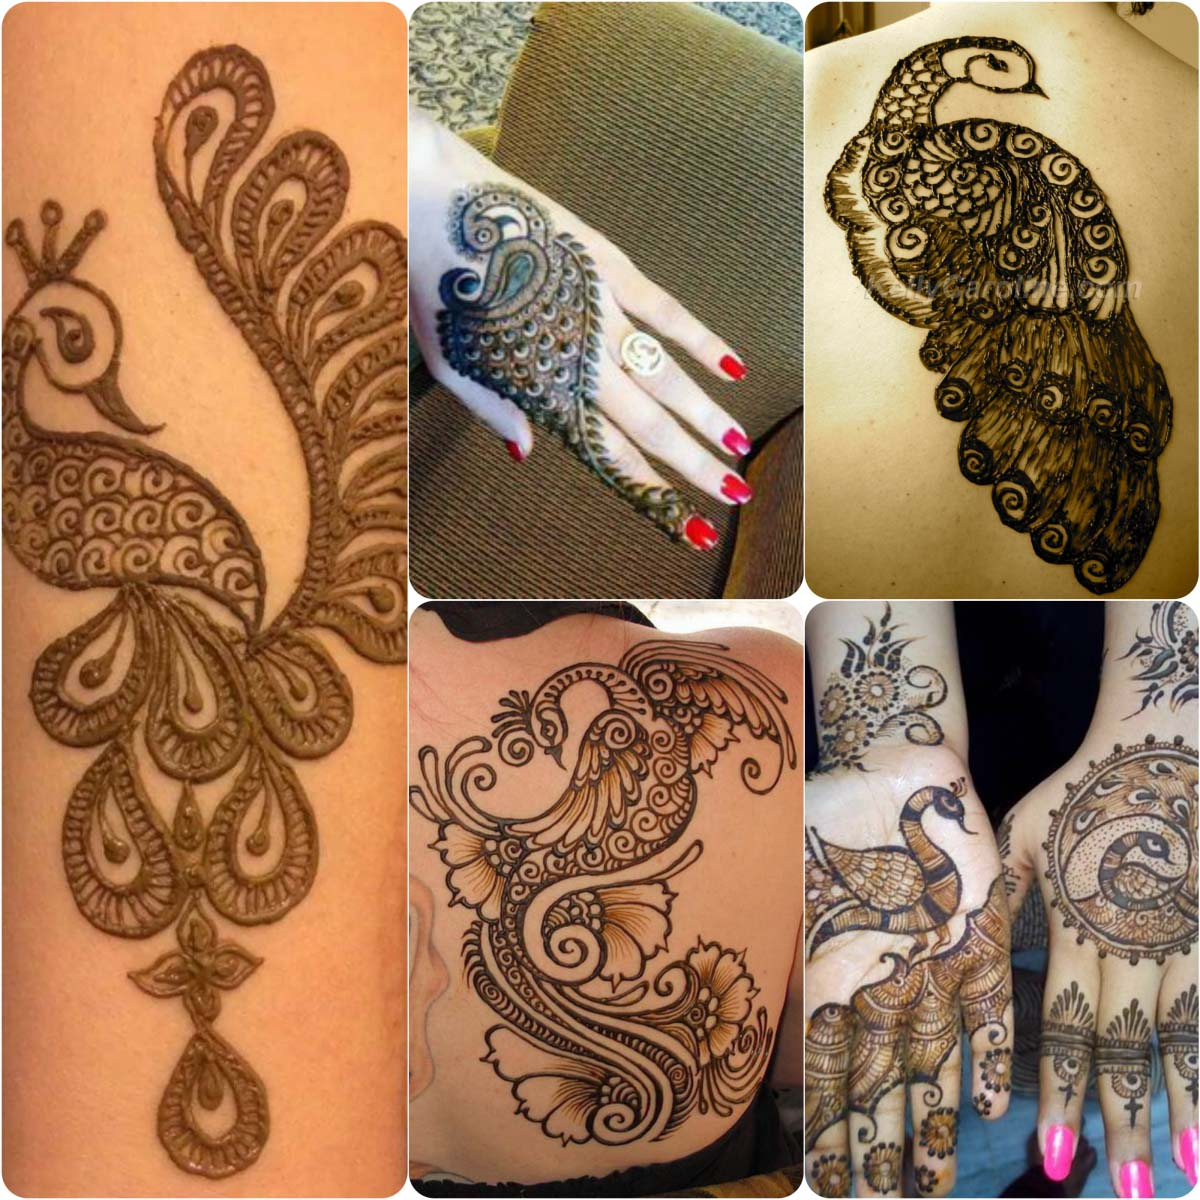 Mehndi design 2017 new model - Enjoy Some Of Our Favorite Peacock Mehndi Designs From The Gallery If You Like Any Do Let Us Known In The Comment Section Below And Don T Forget To Visit